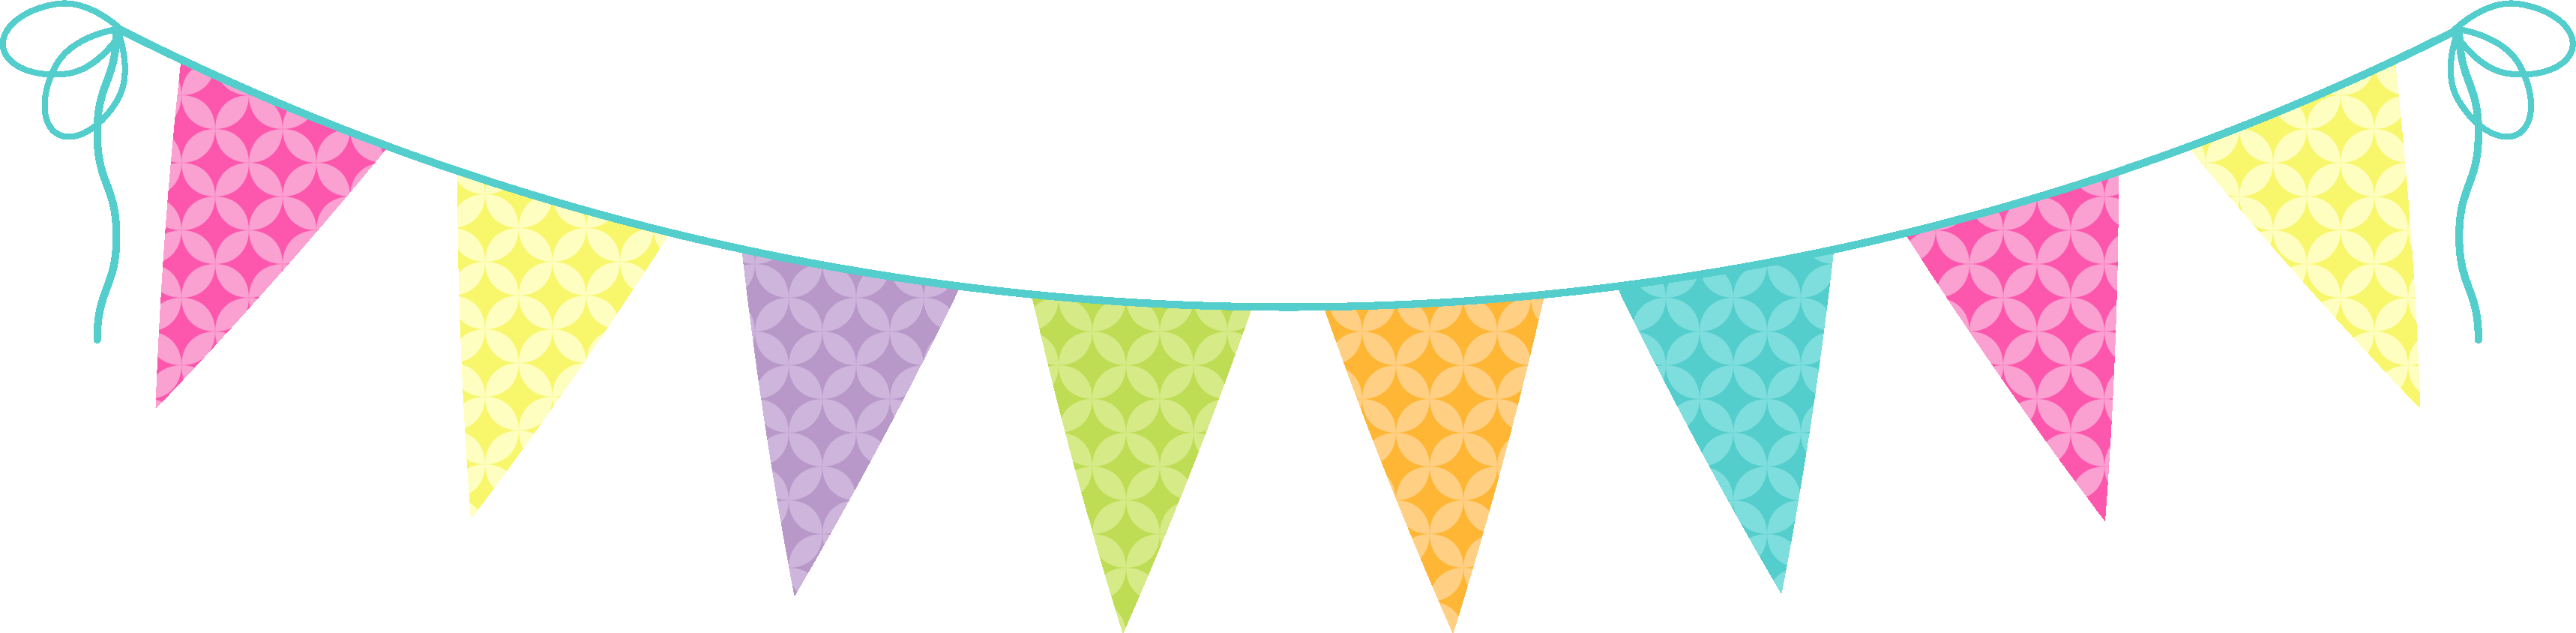 Triangle clipart celebration banner Crafthubs celebration — Banner Banner